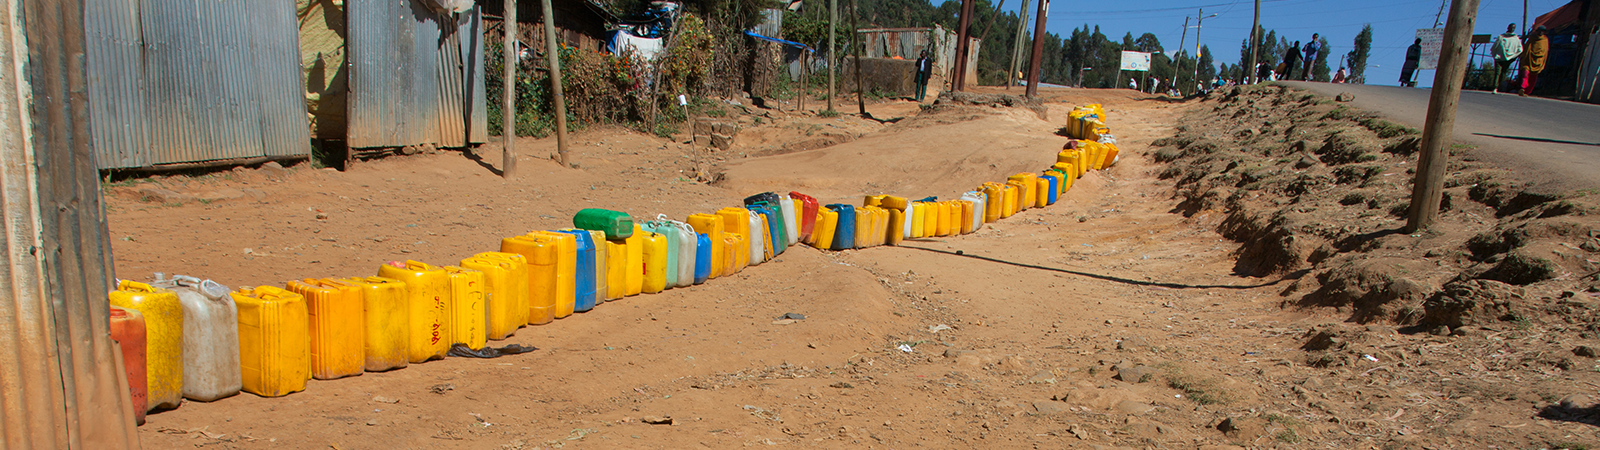 Waiting for water in Ethiopia © Aleksandr Hunta / Shutterstock